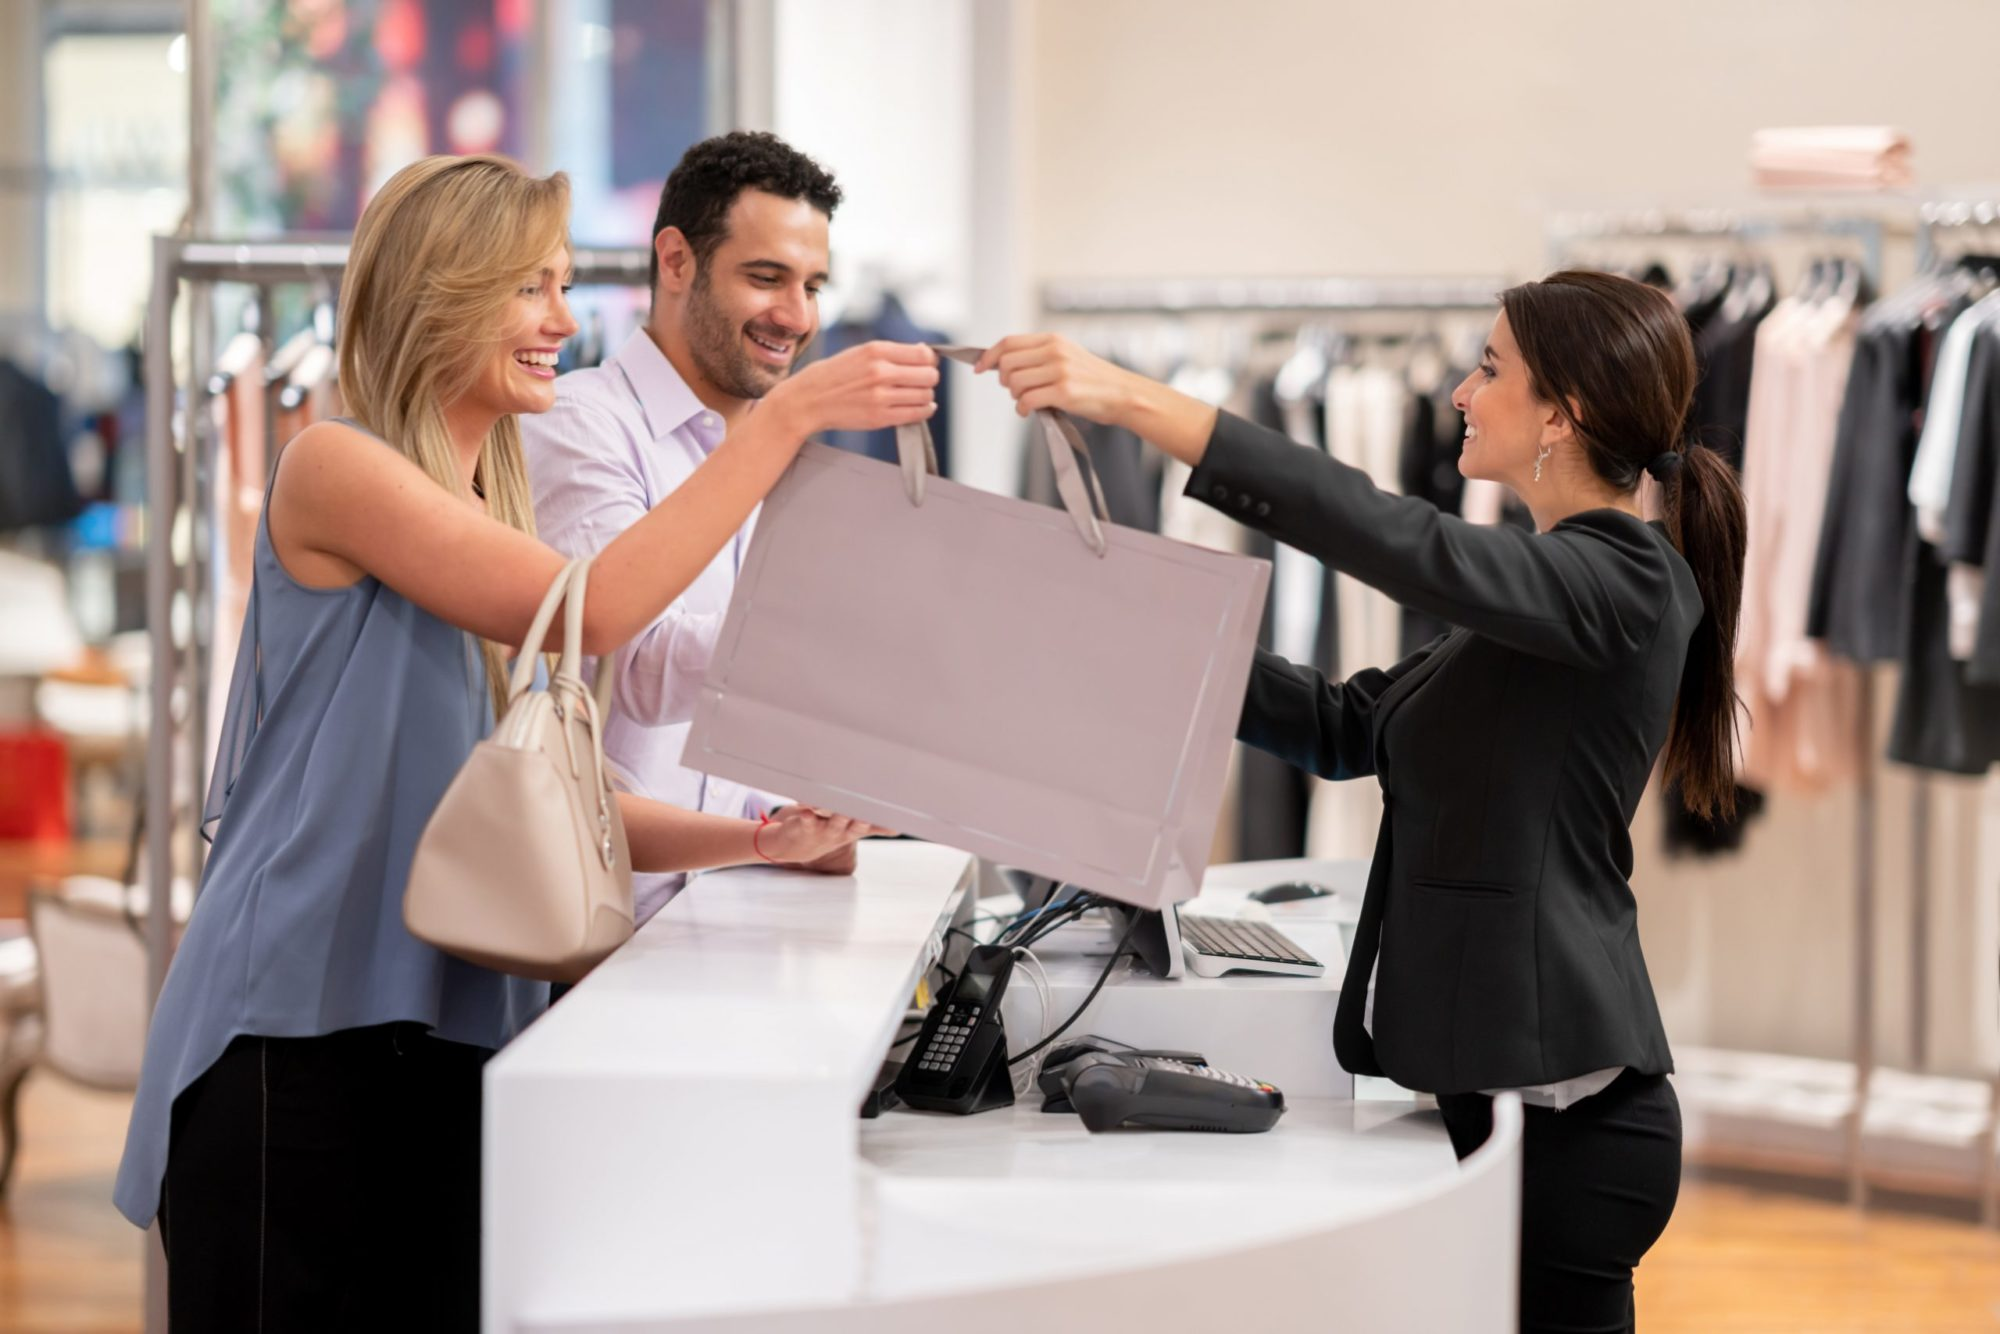 couple shopping at clothing store paying cashier